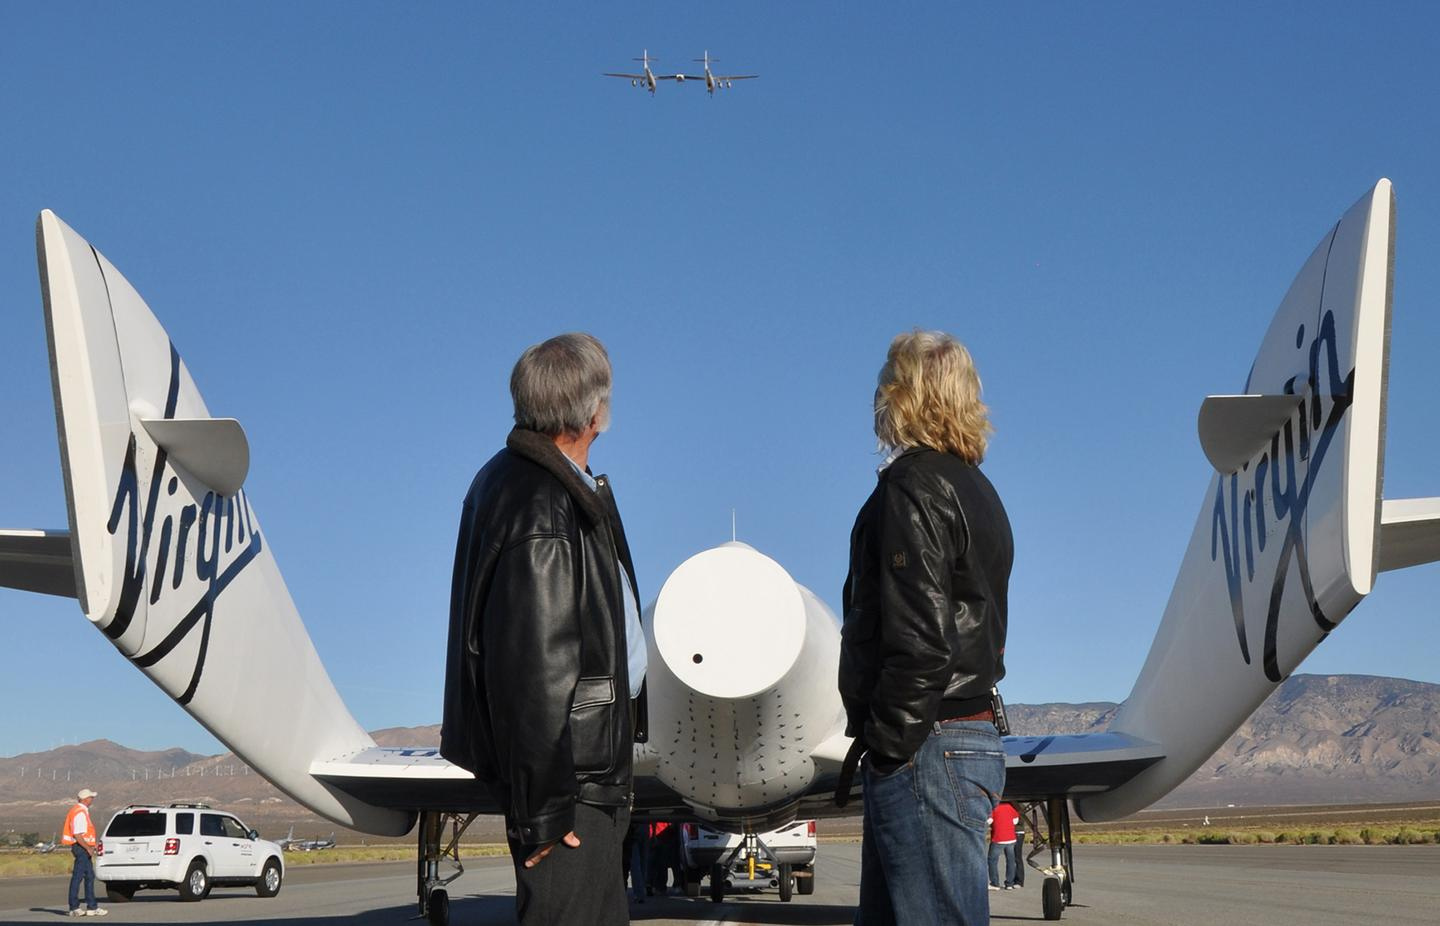 Sir Richard Branson and Burt Rutan with VSS Enterprise as VMS Eve flies above (Image: Mike Mills)